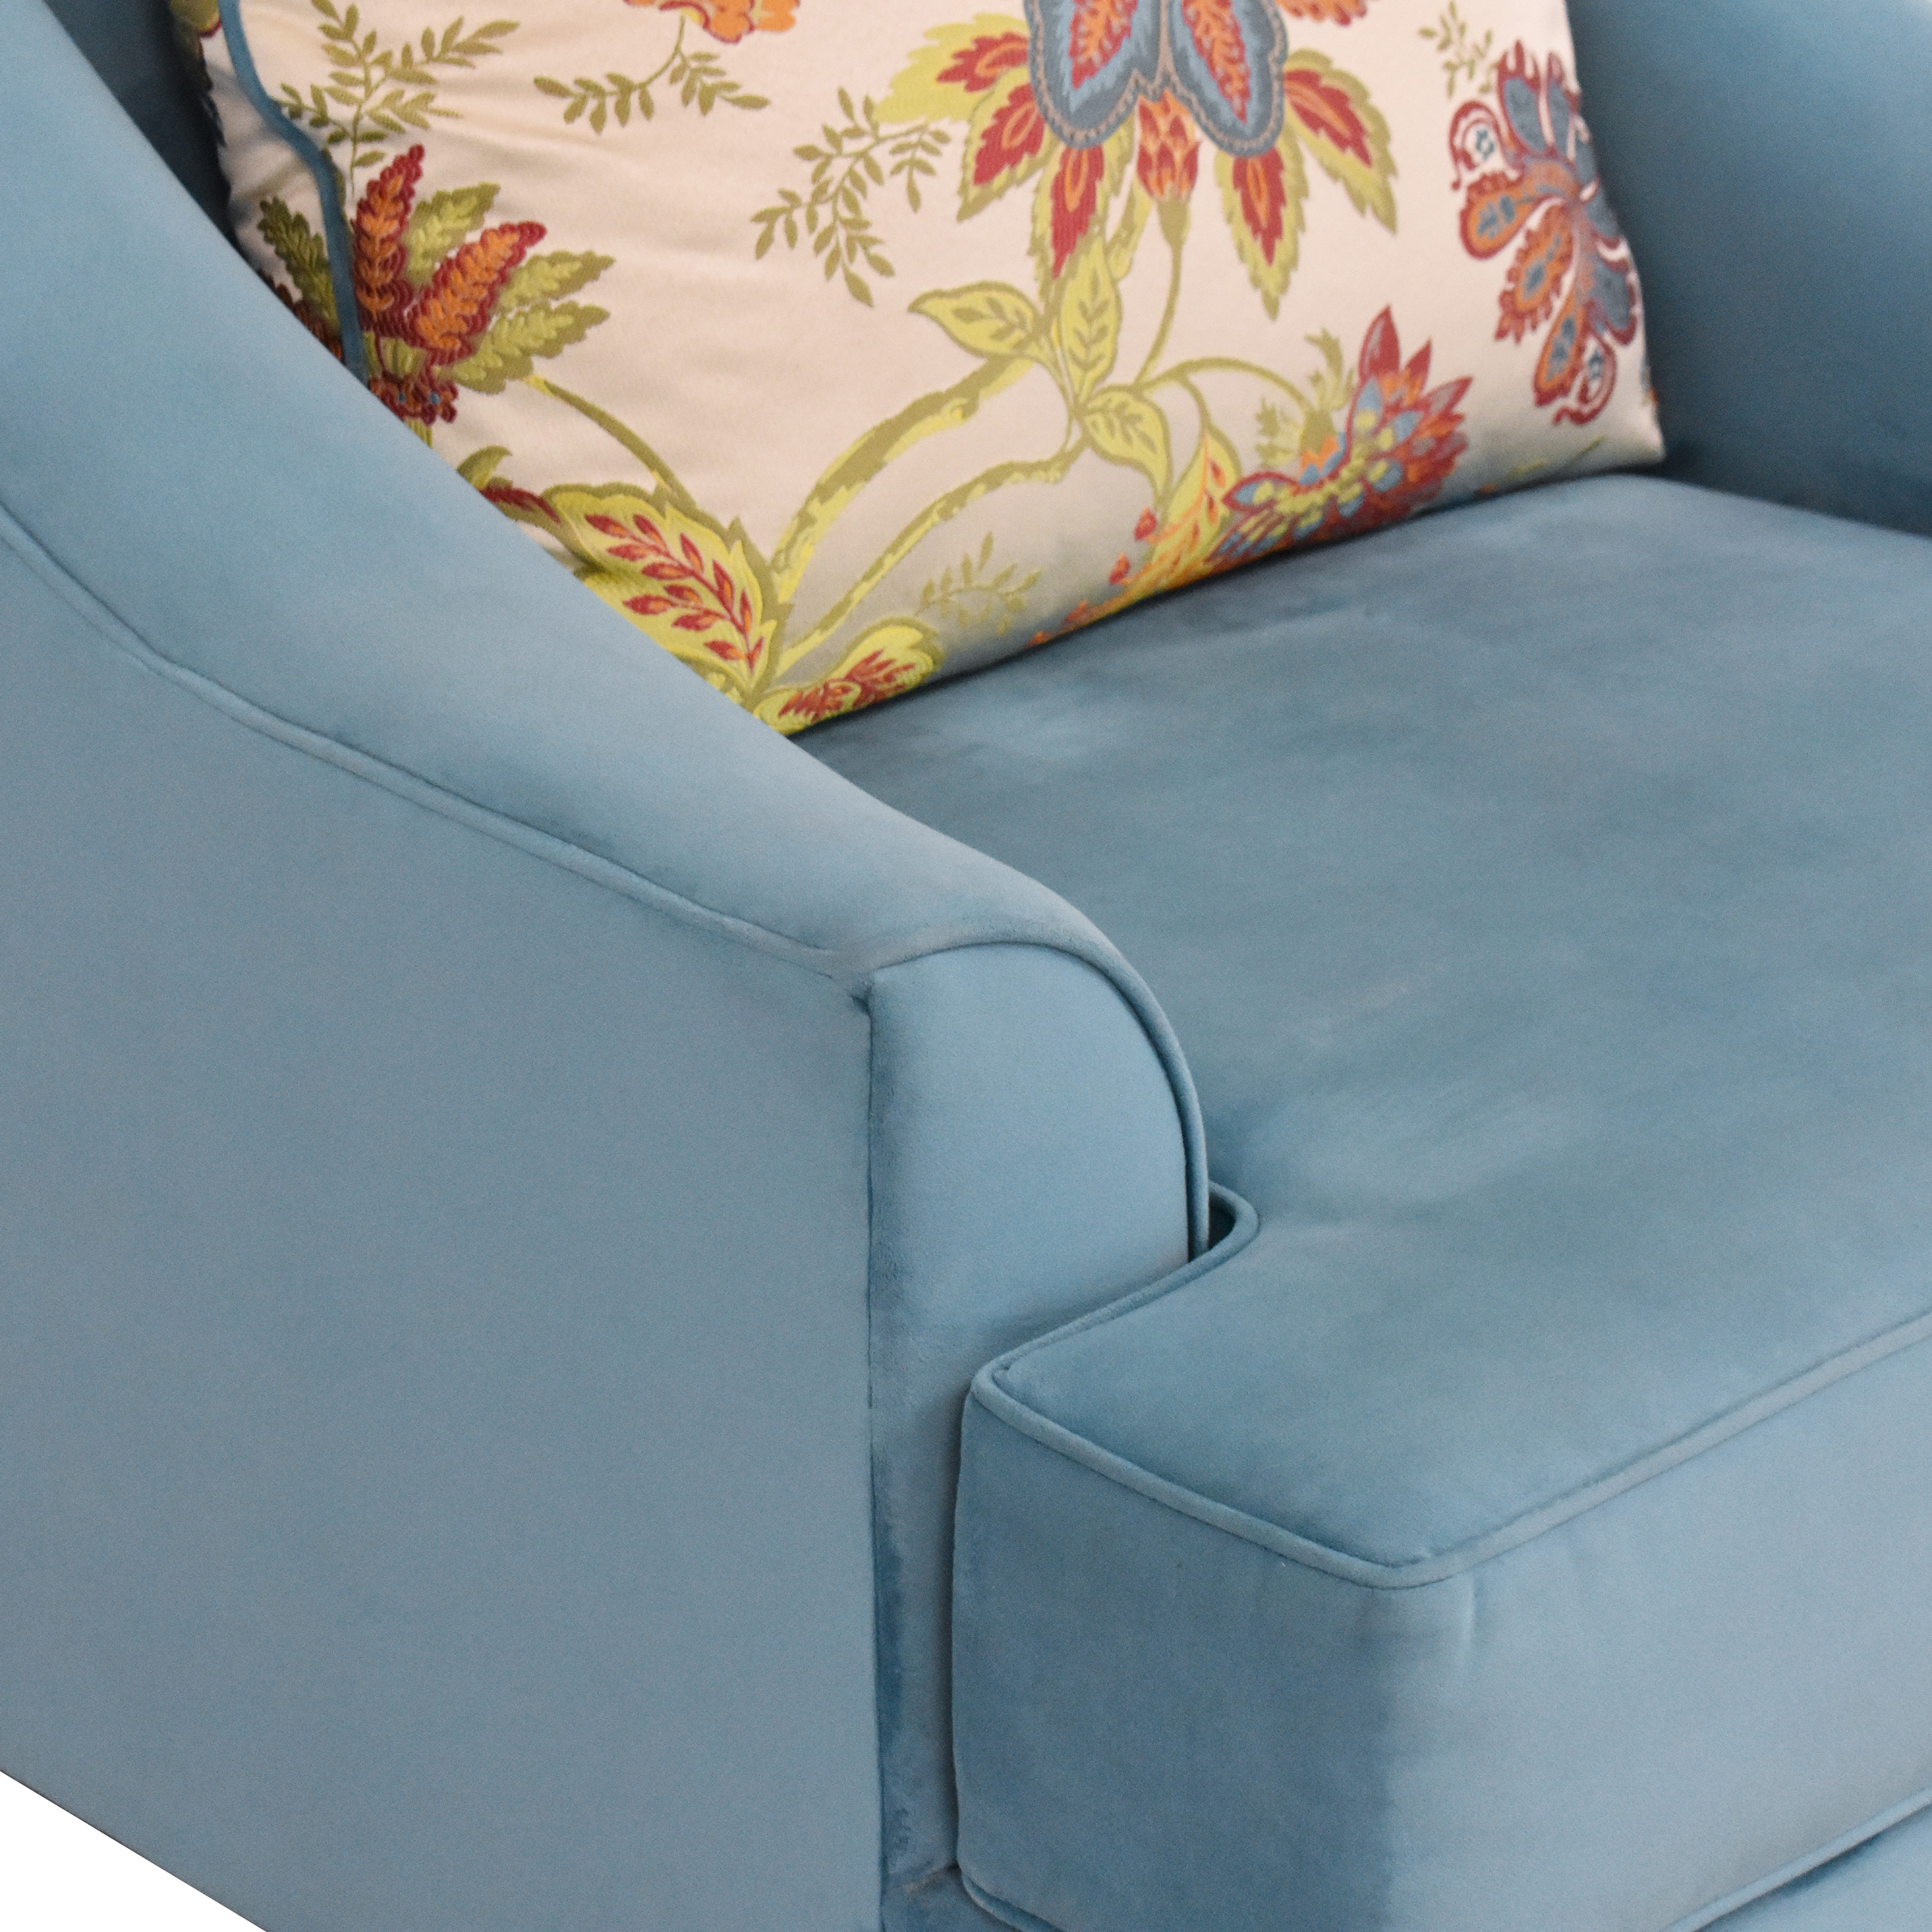 Furniture of America Furniture of America Accent Chair used